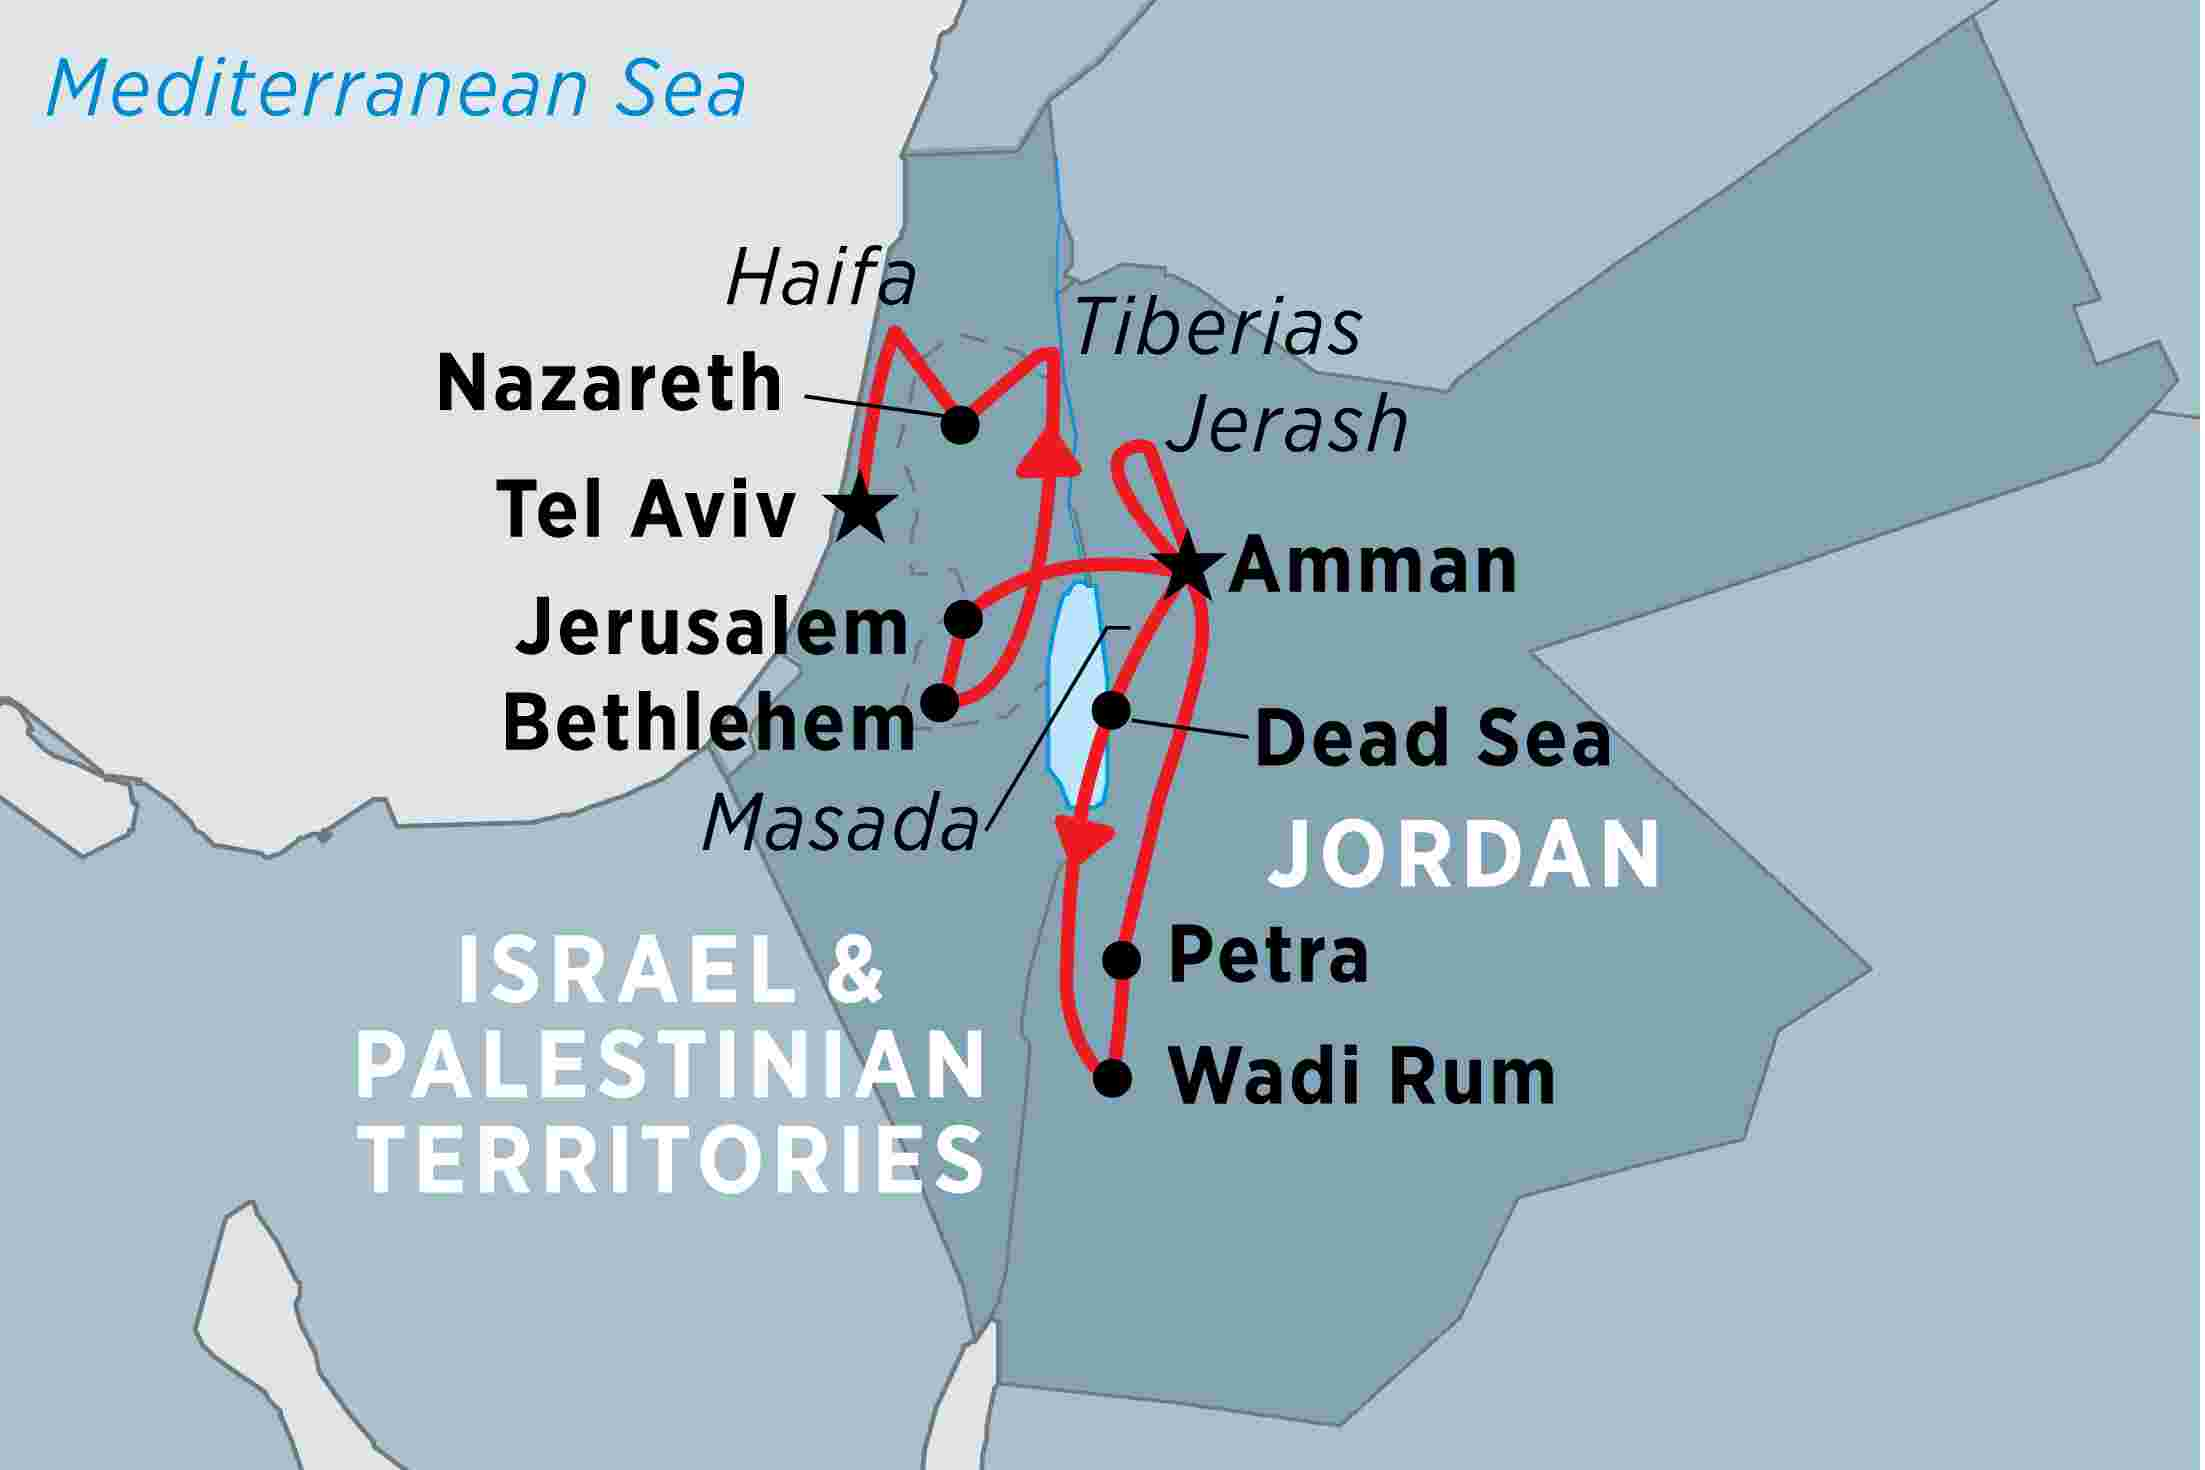 journey through a history of biblical proportions on this premium adventure  across jordan and israel